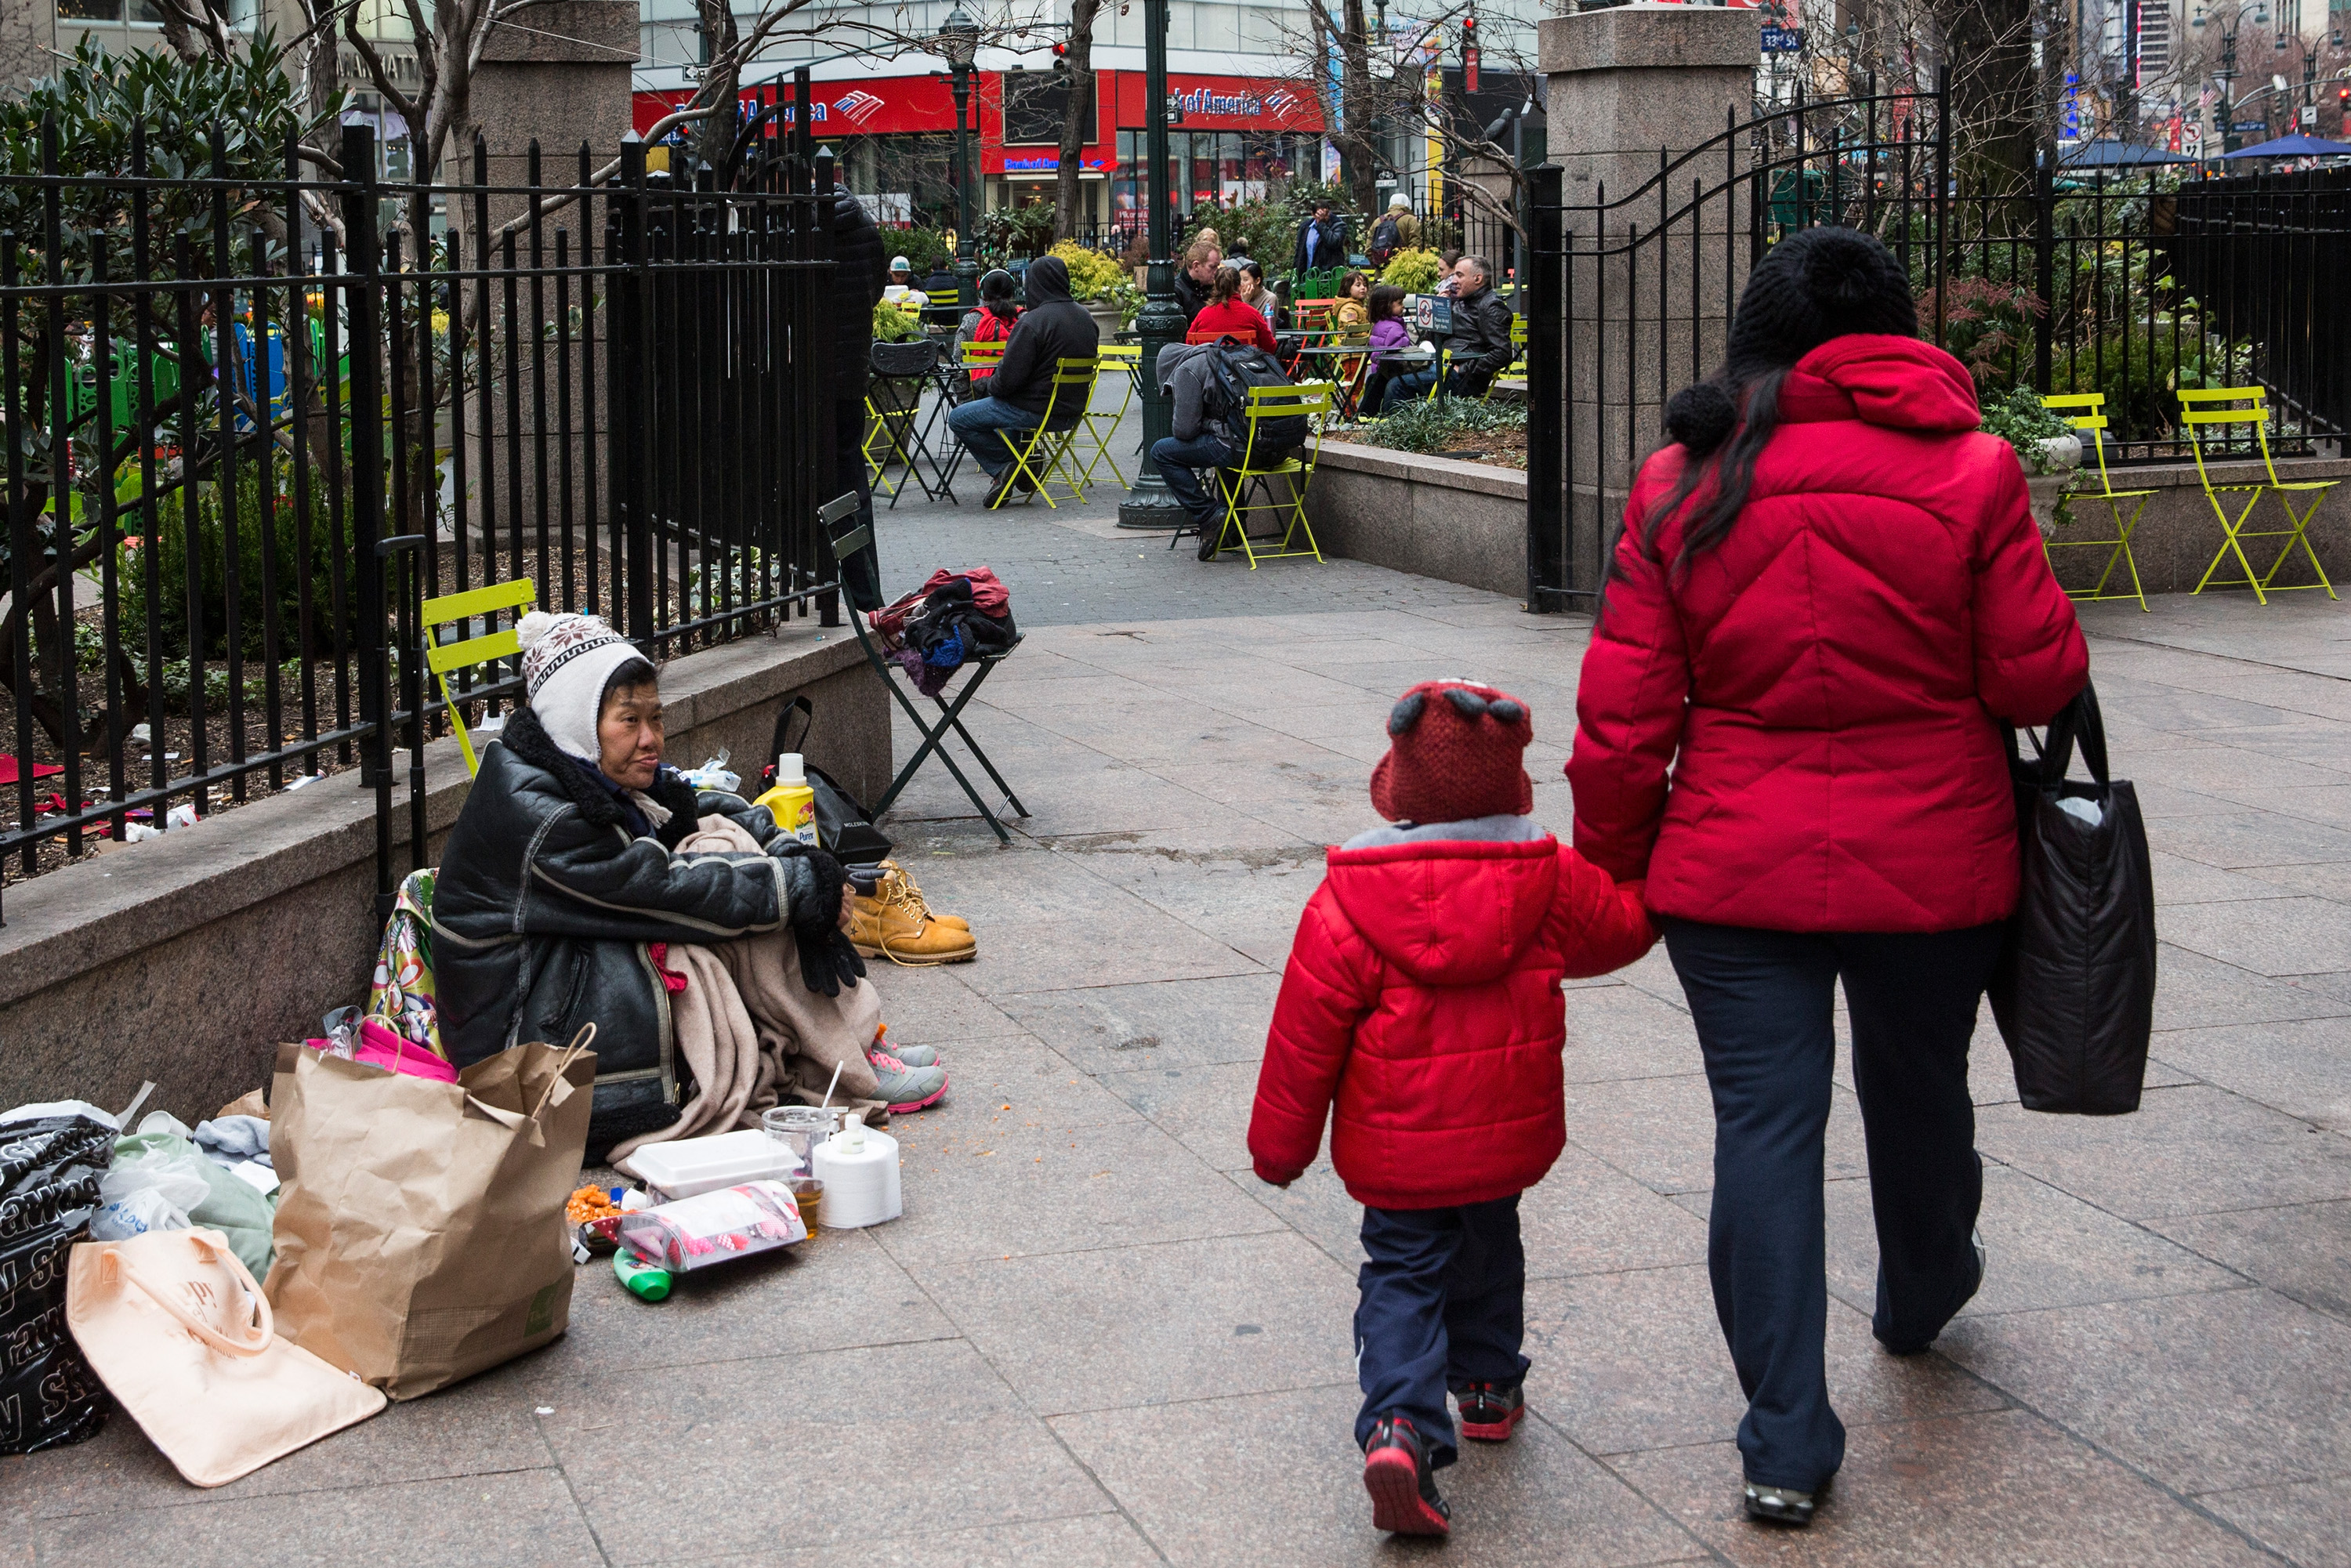 Homeless New Yorkers At Odds With City On New Homeless Policy